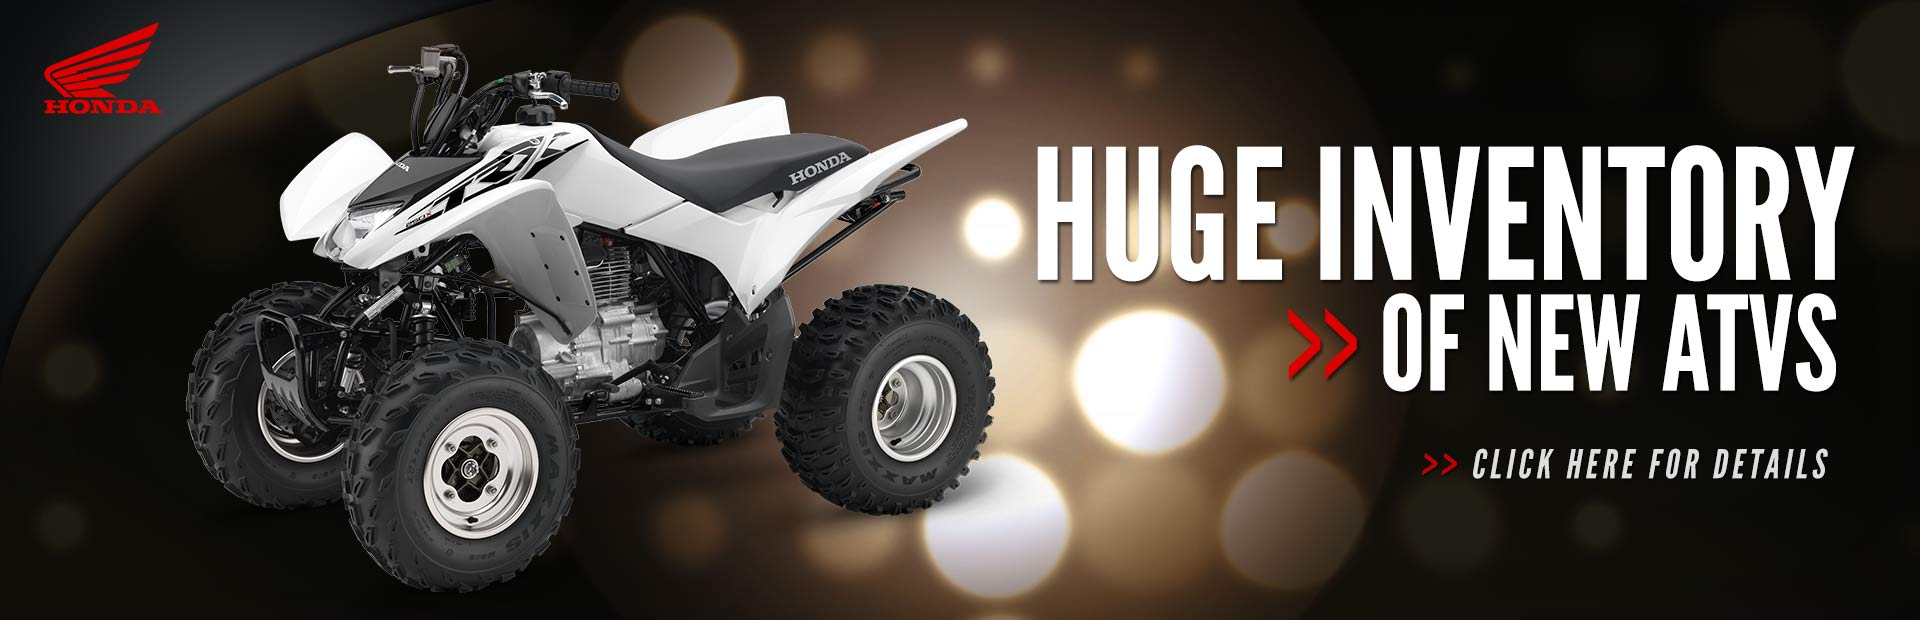 We have a huge inventory of new Honda ATVs! Click here to see for yourself.